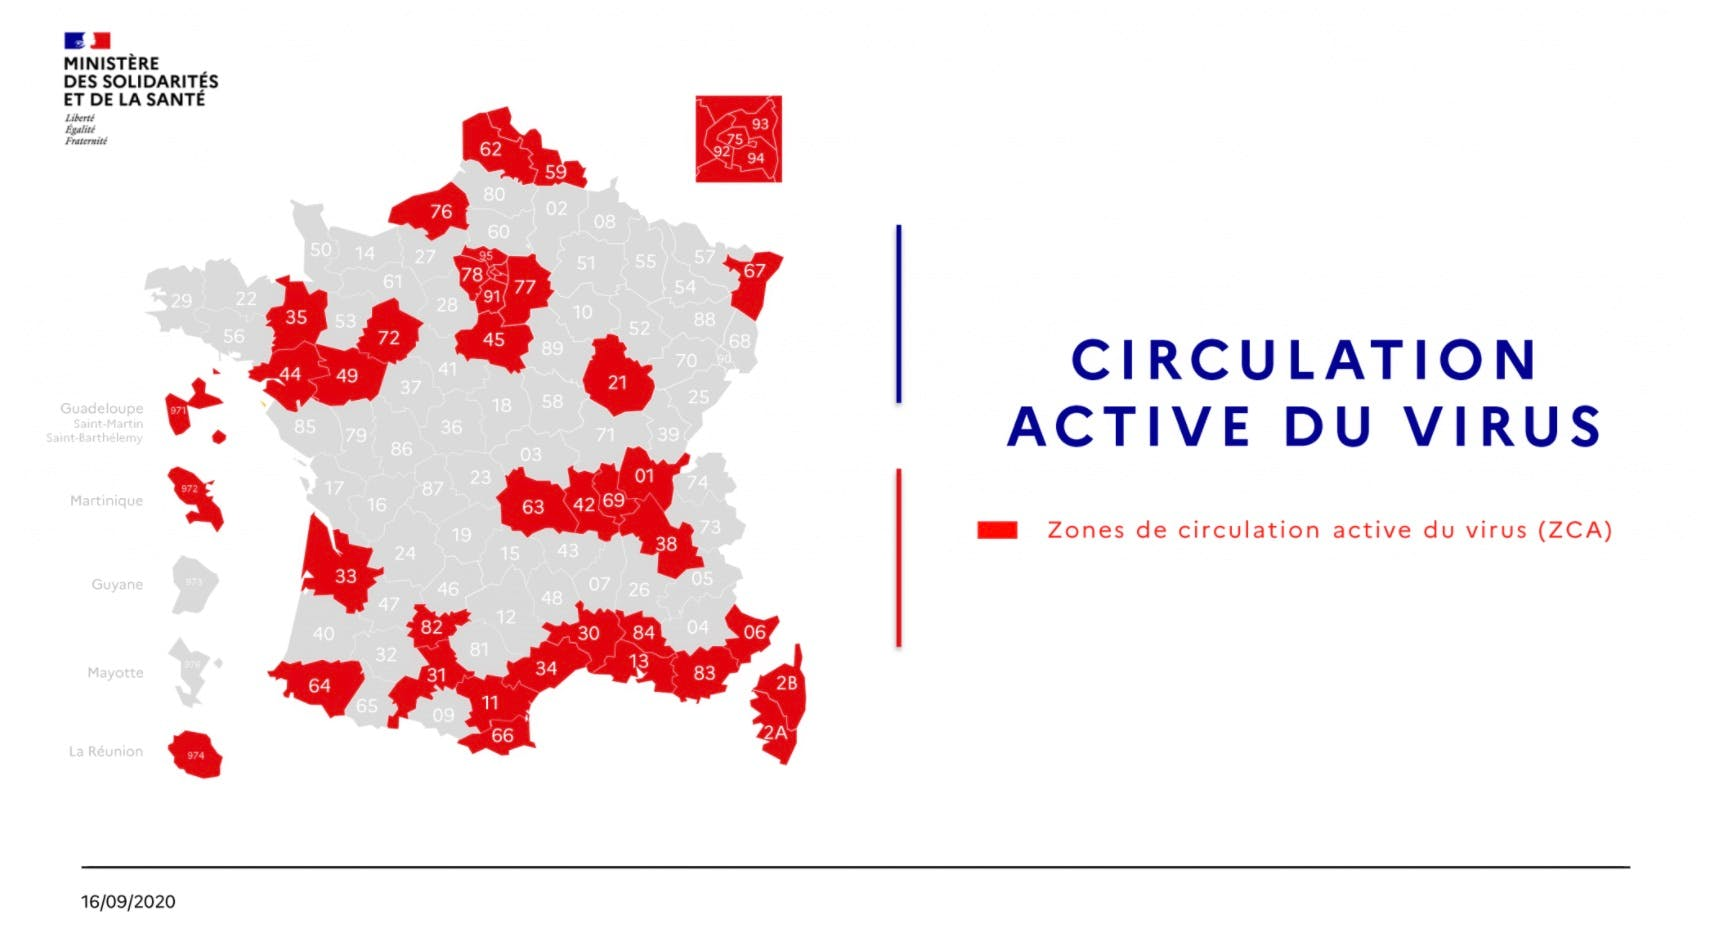 Où circule activement le virus au 16 septembre 2020 ?